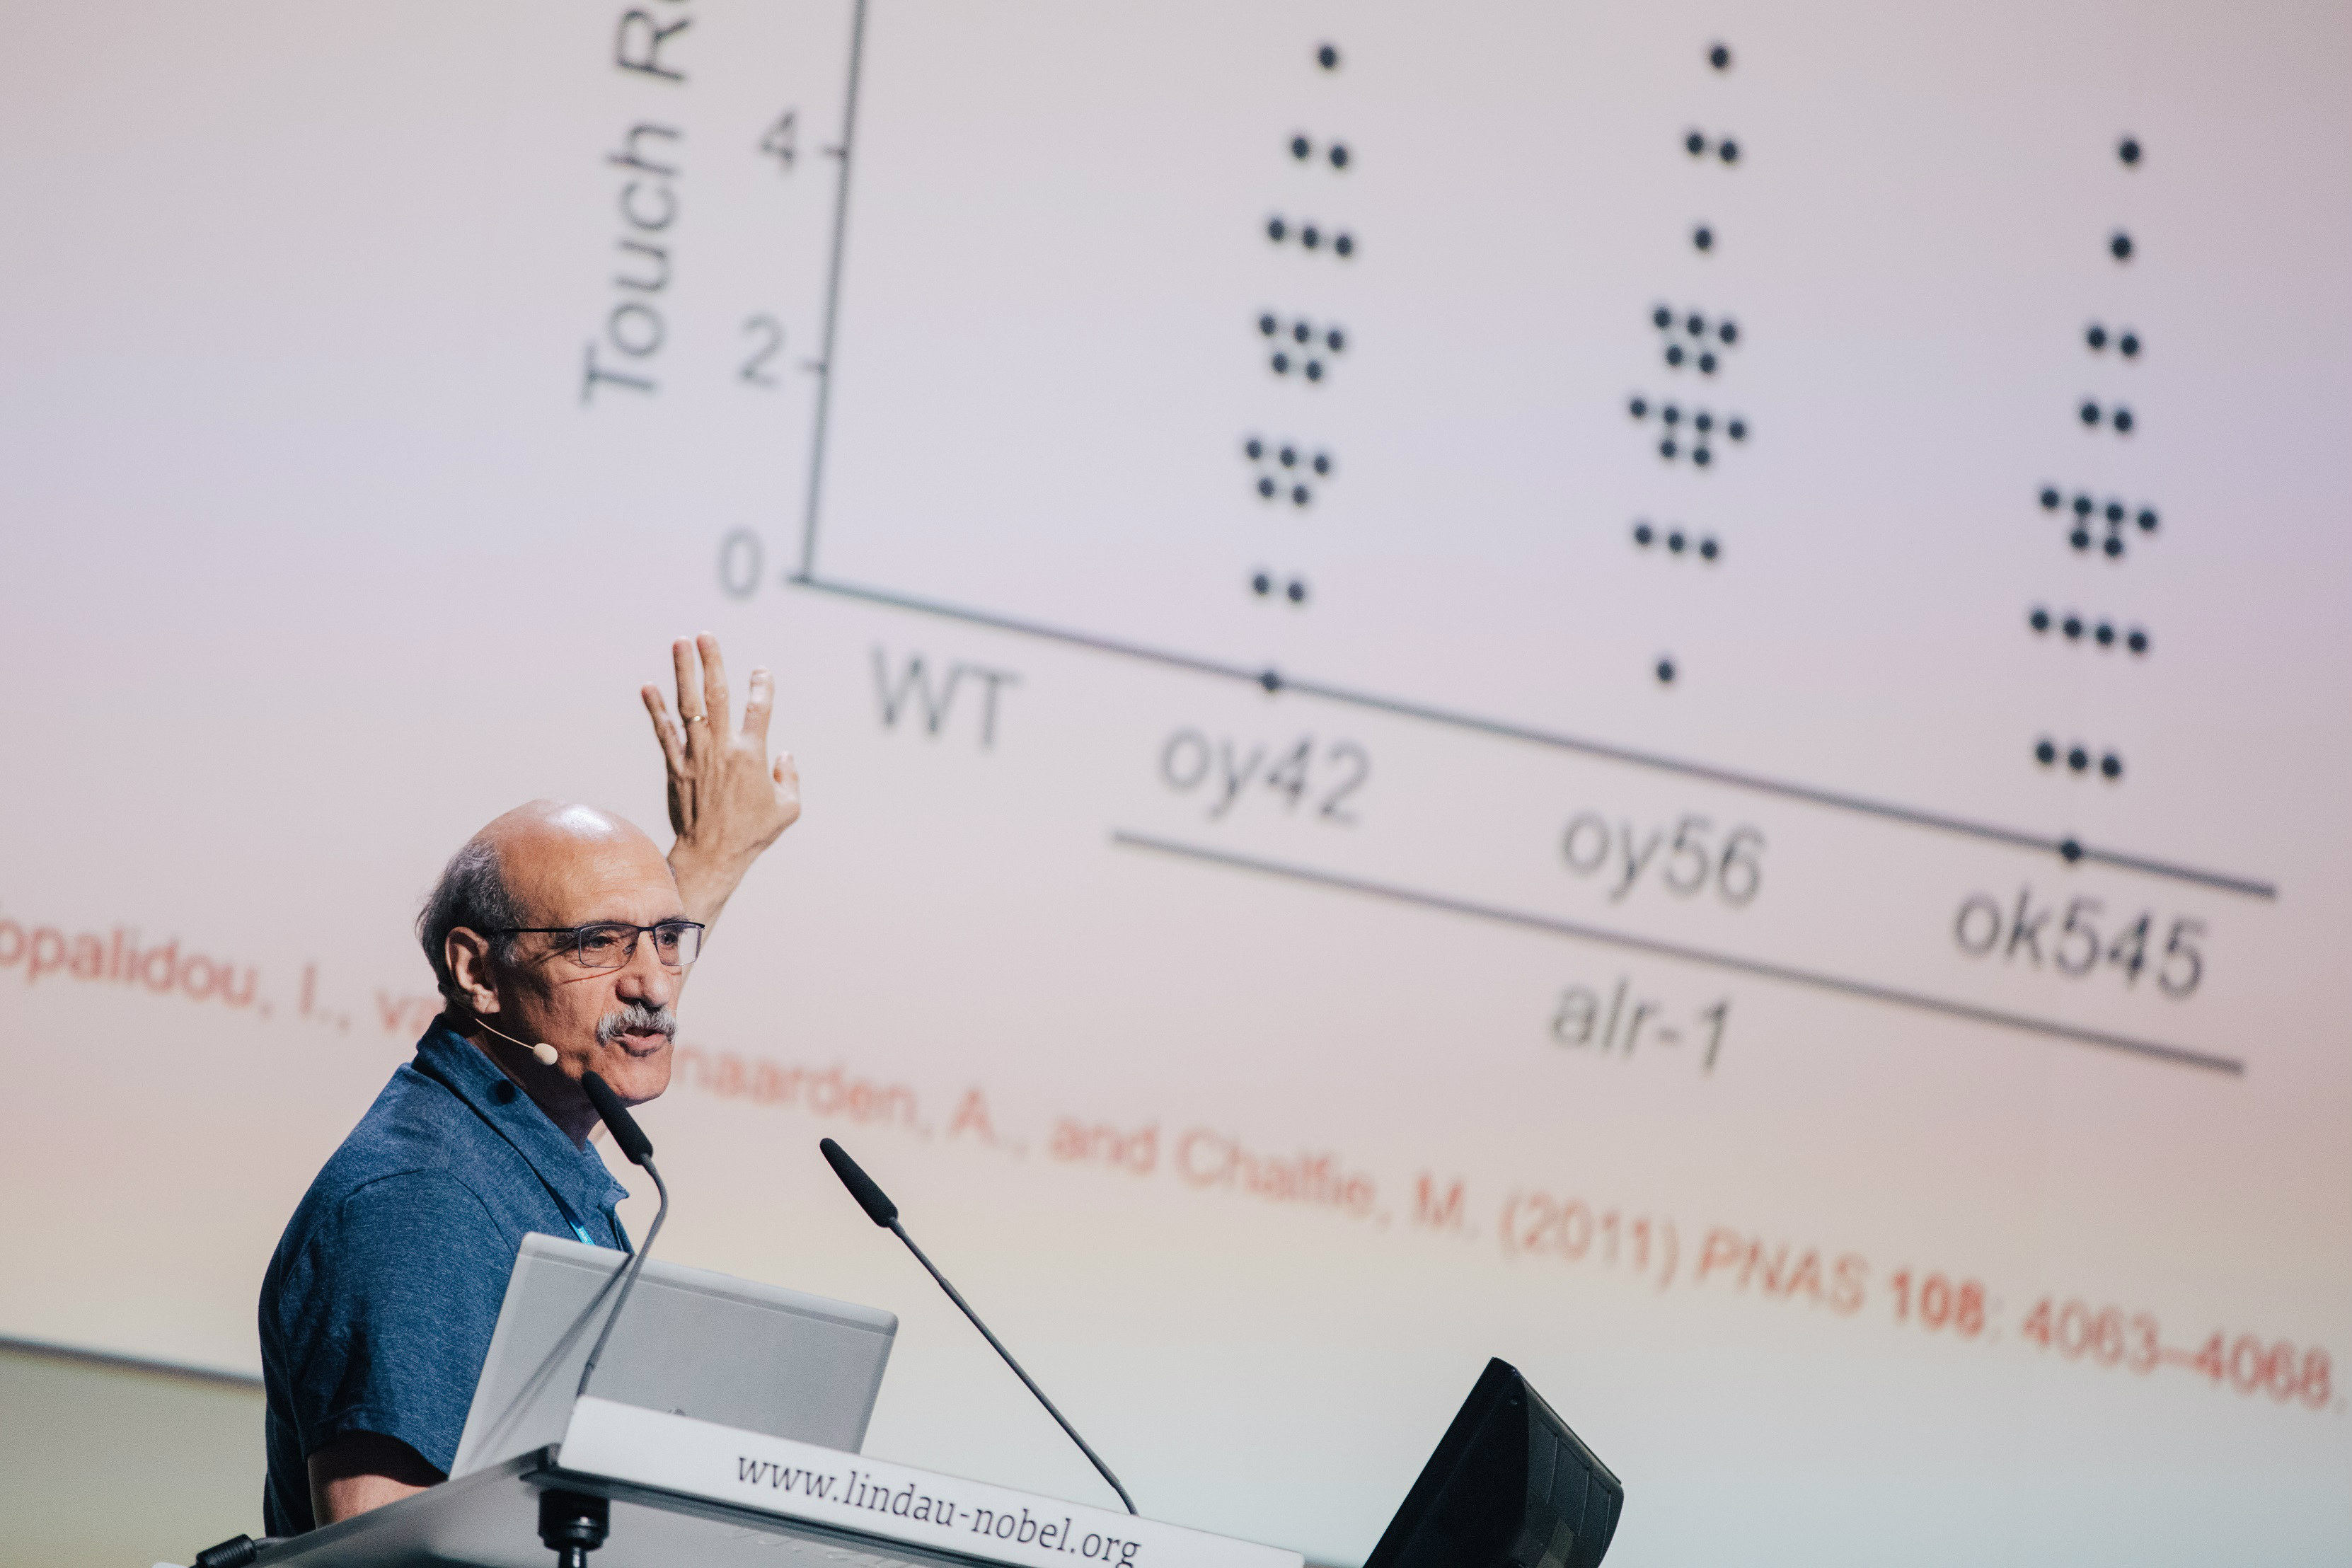 Chalfie's lecture during the 2017 Lindau meeting